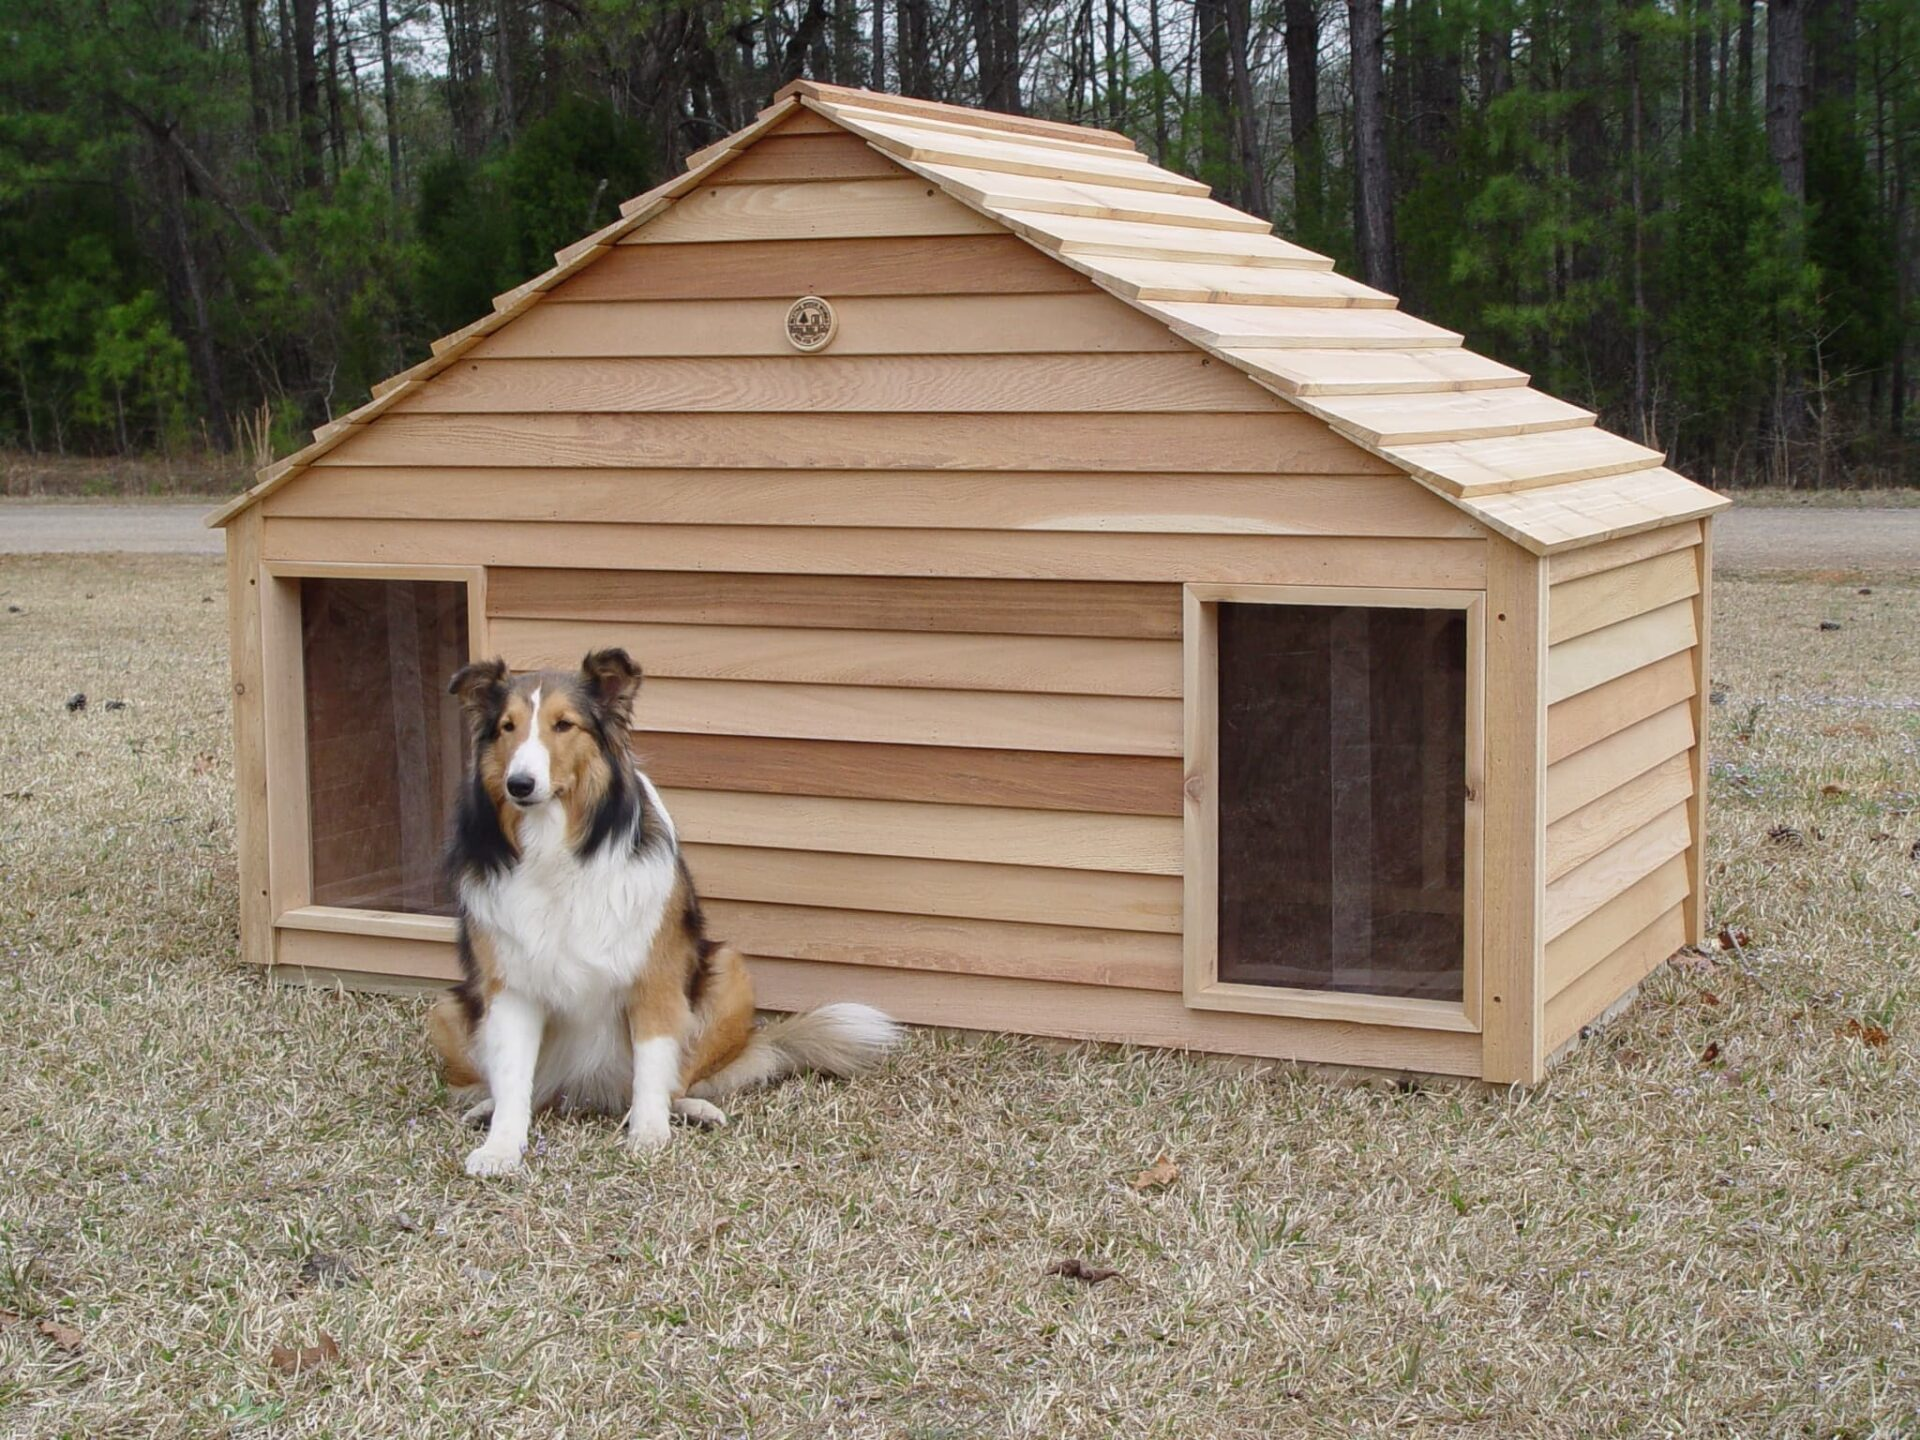 Dog House For 2